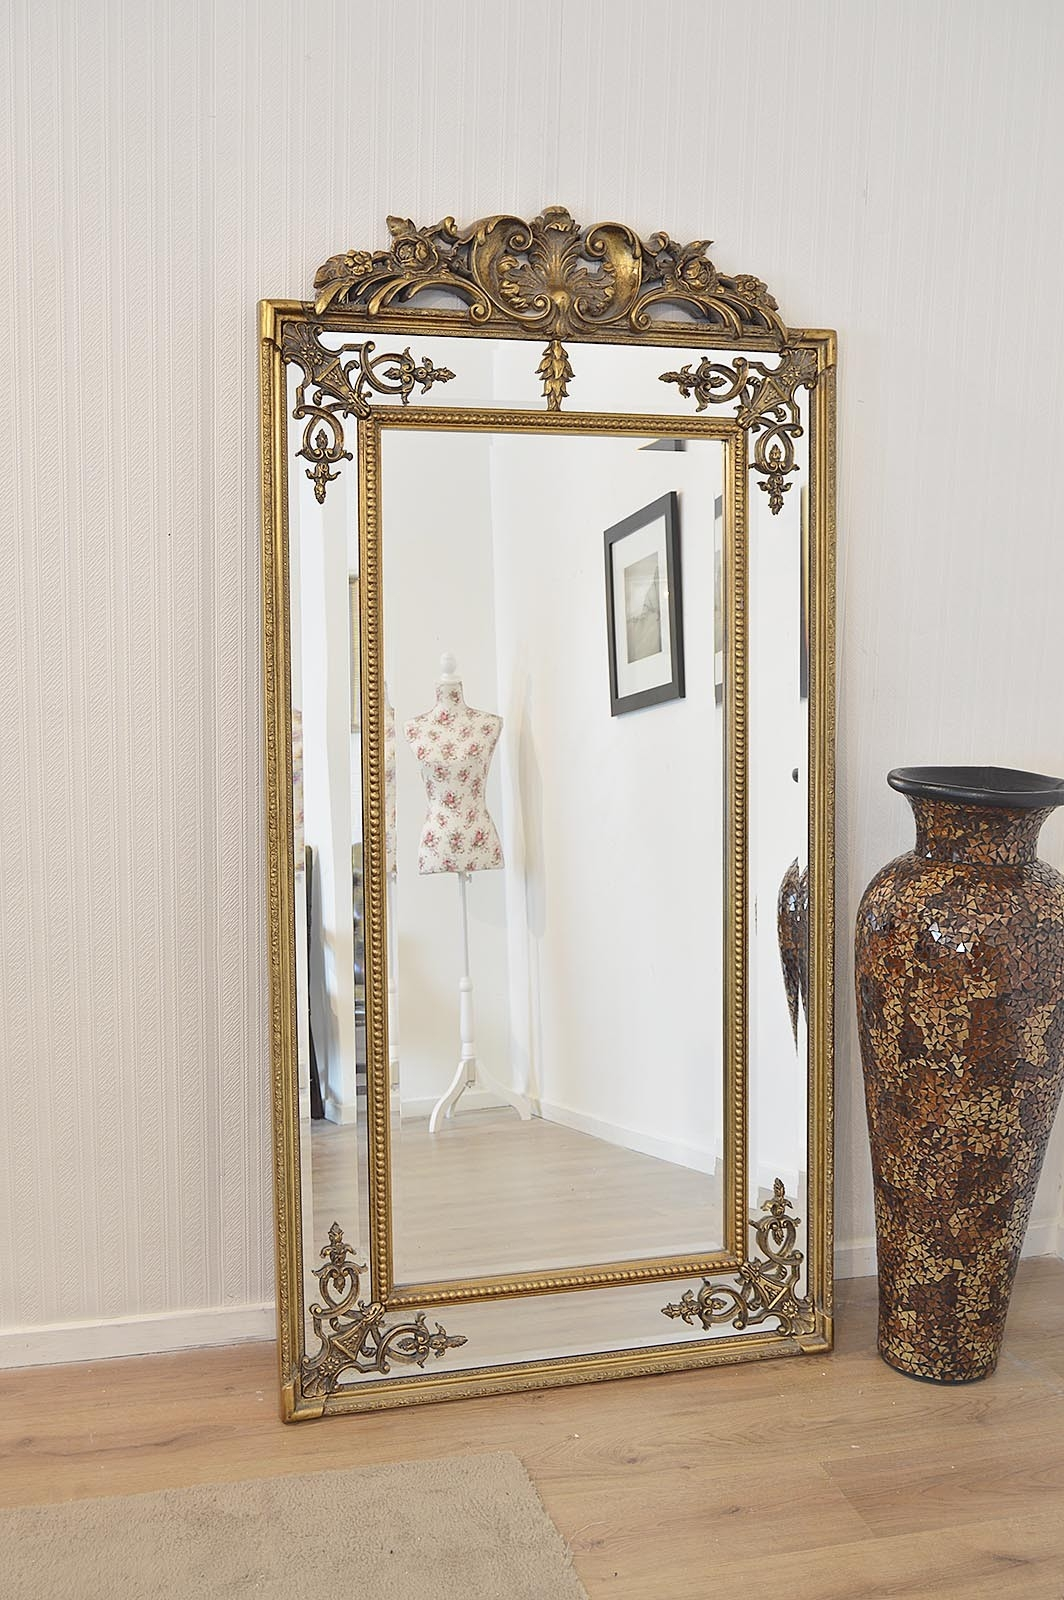 Venetianframeless Mirrors Category In Very Large Ornate Mirrors (Image 15 of 15)